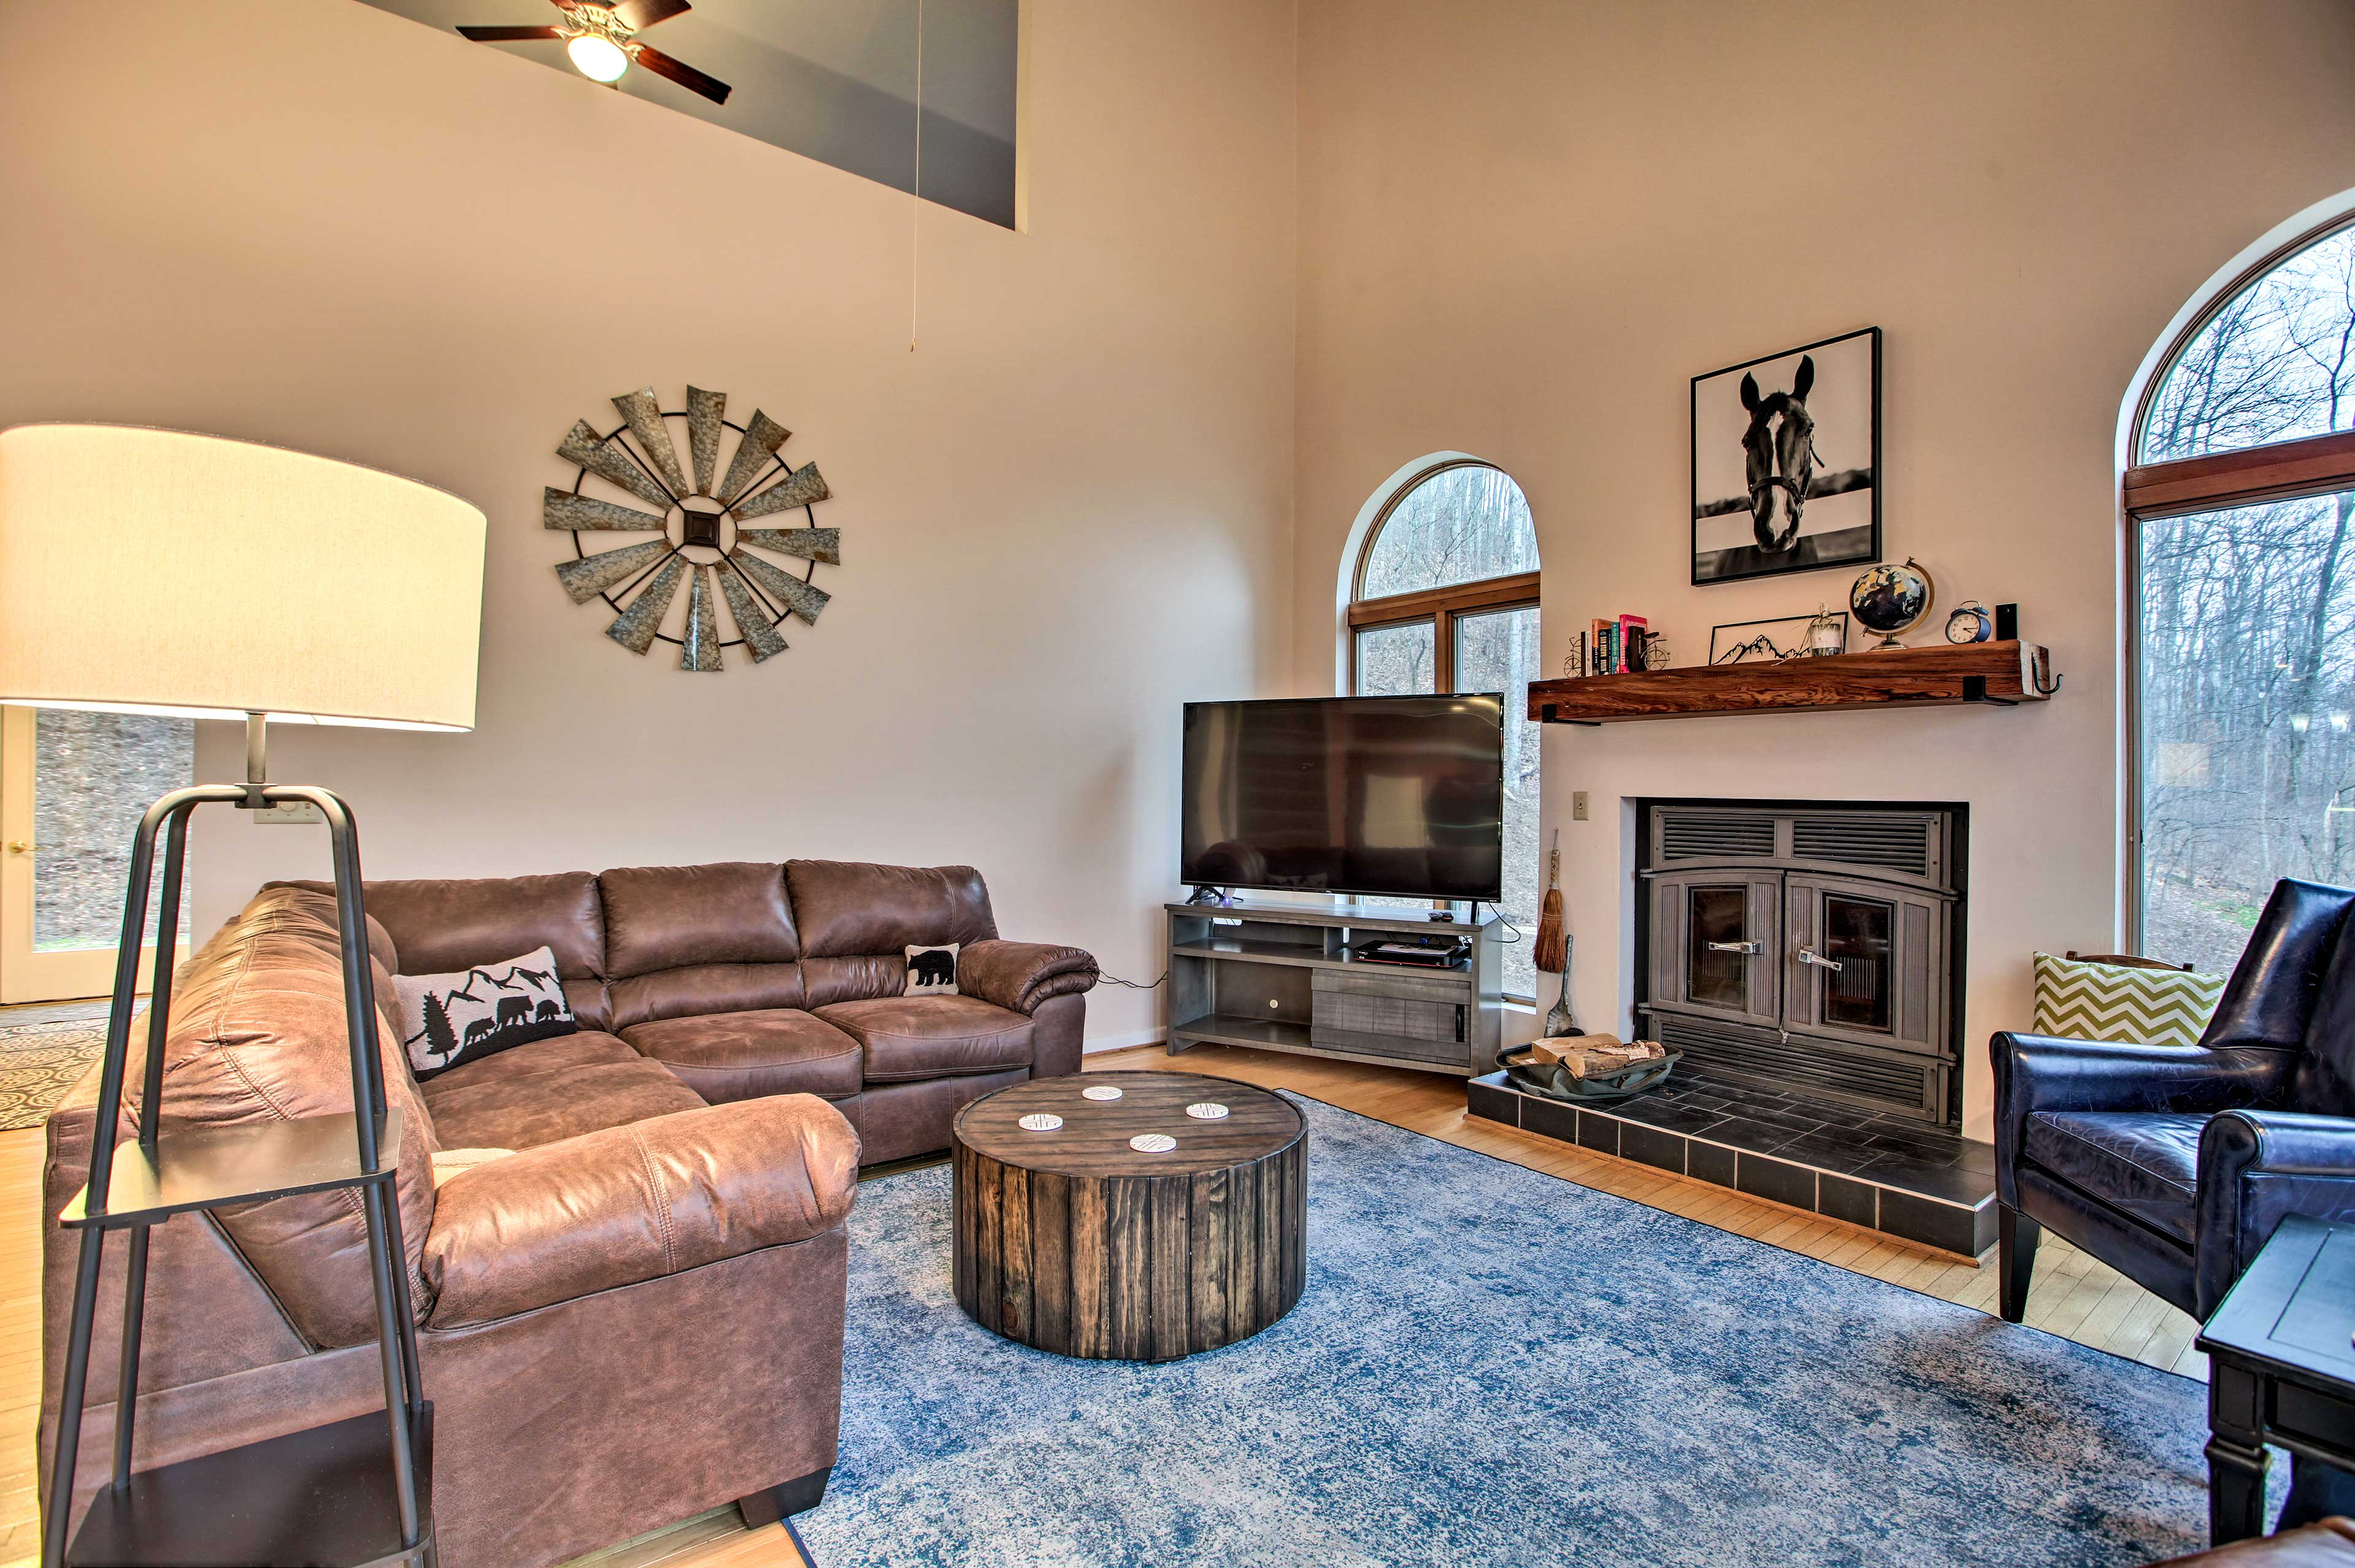 Vaulted ceilings create a spacious feel throughout this home.